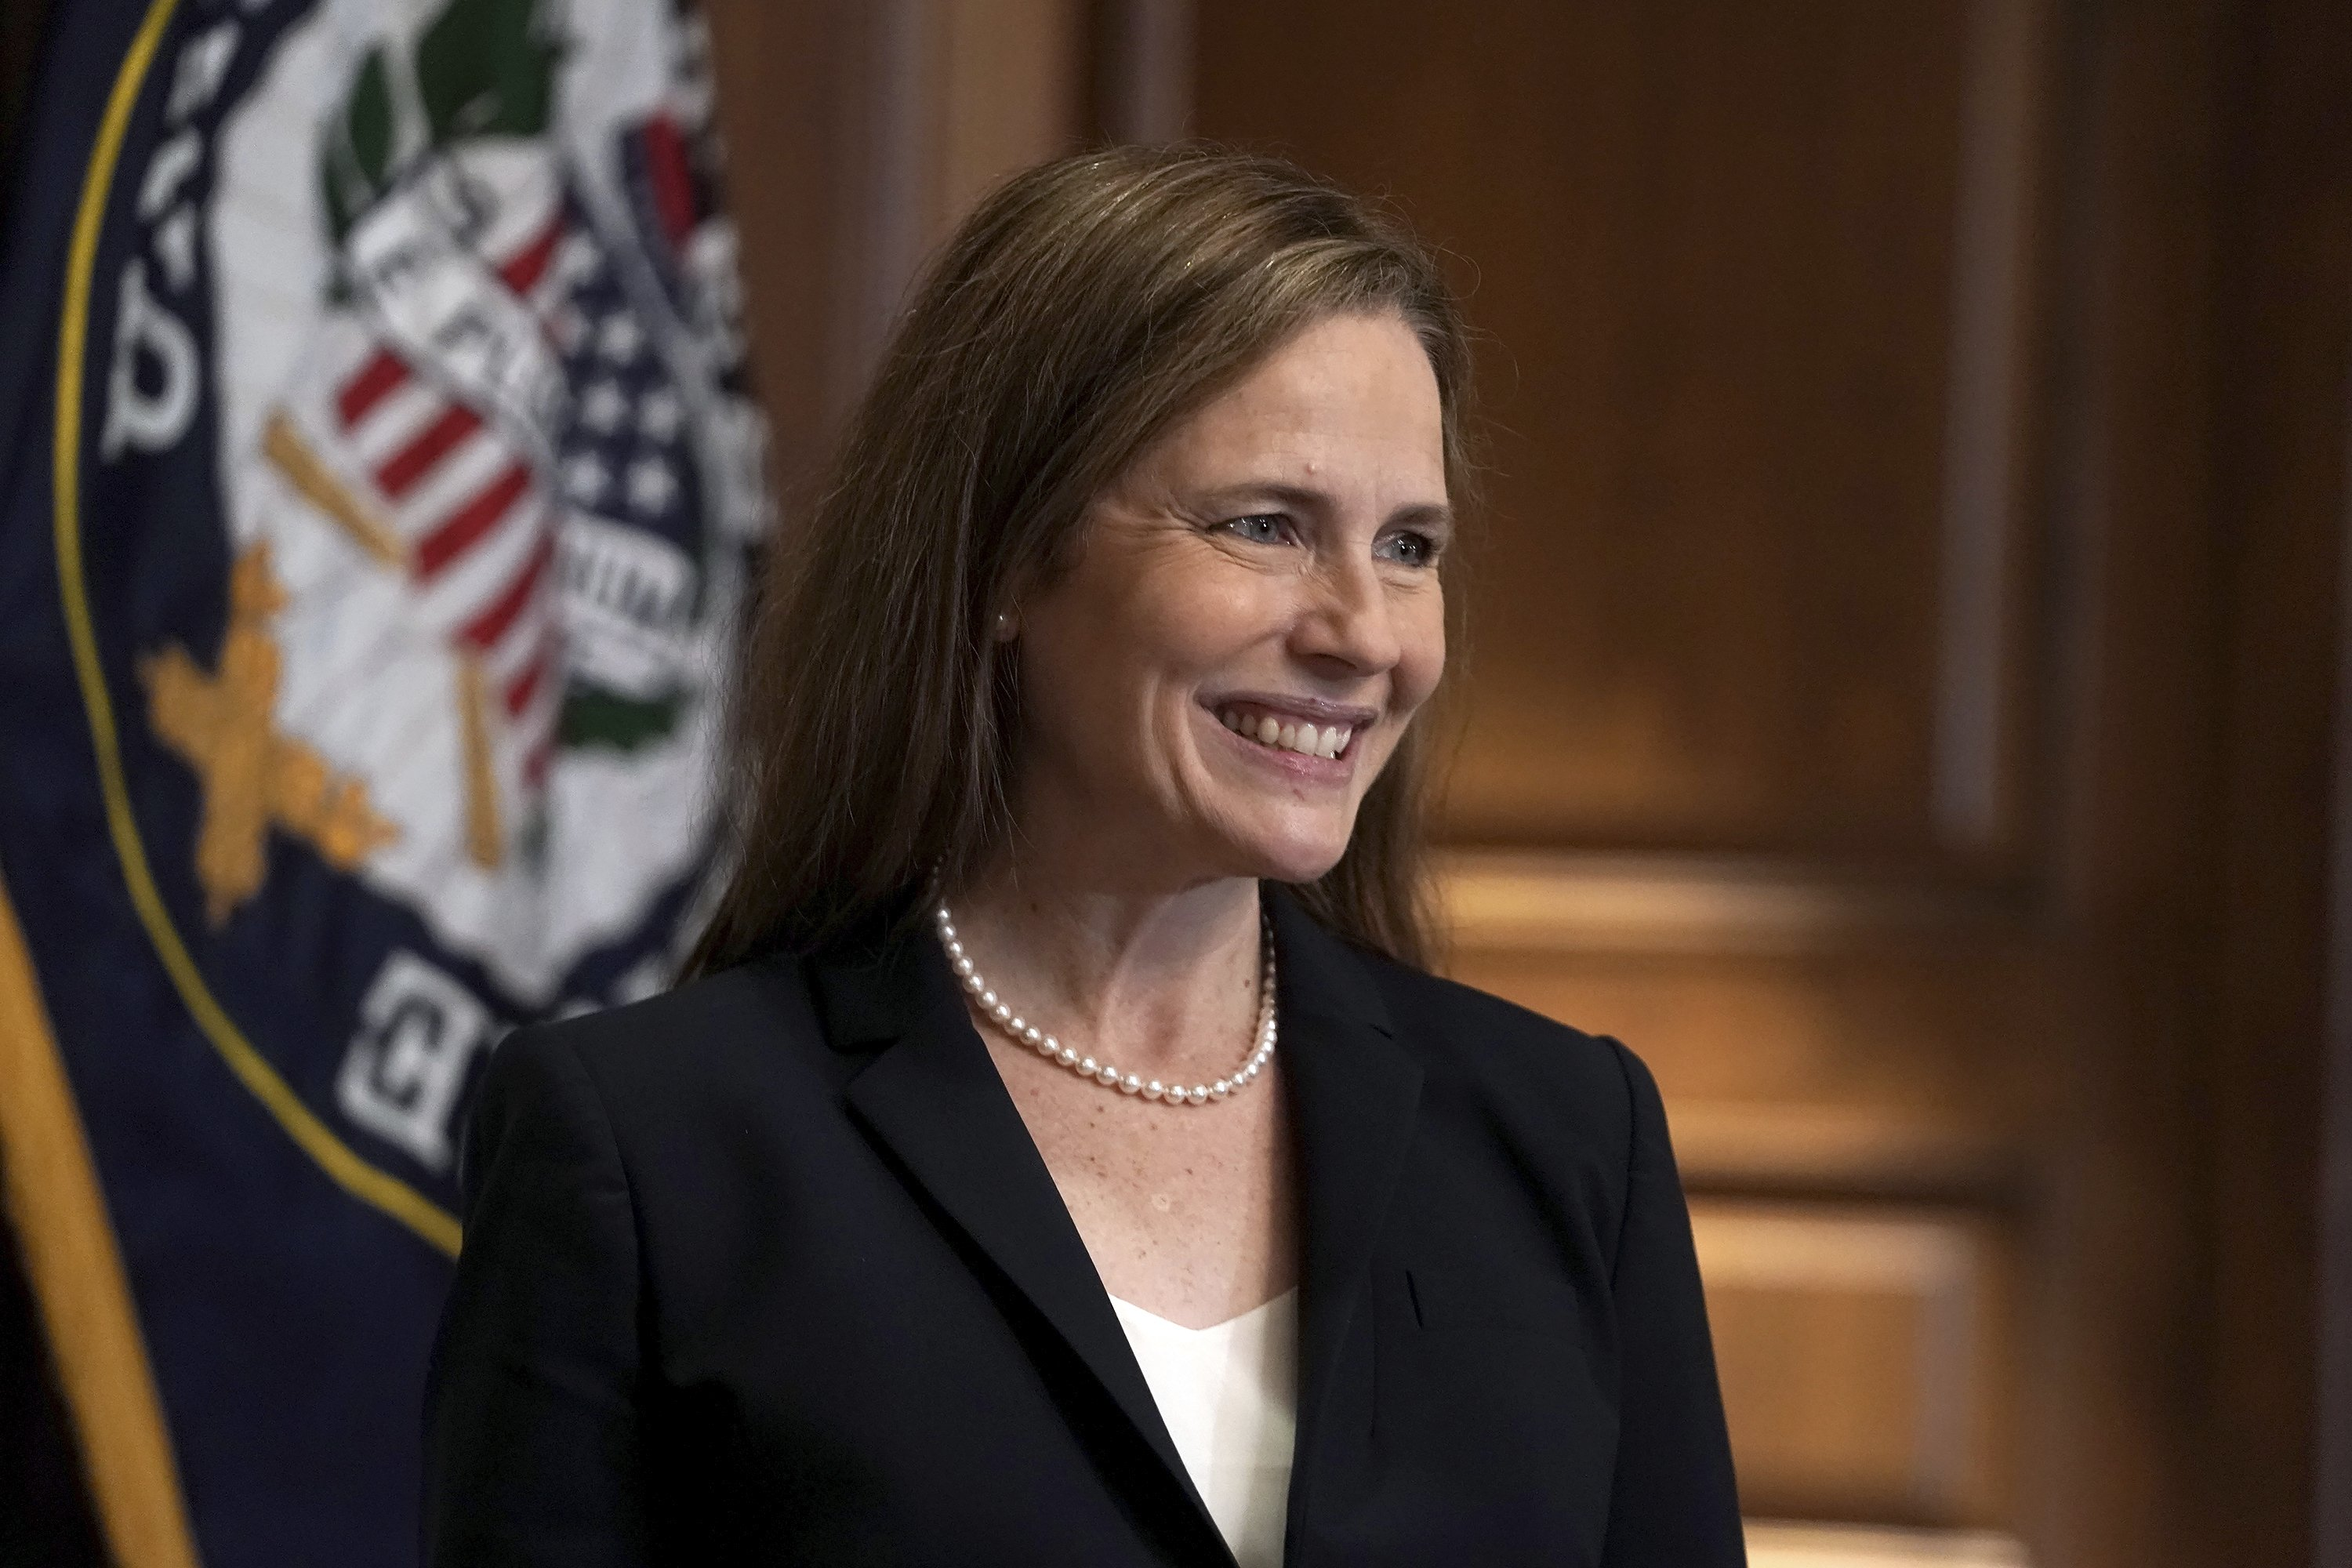 BREAKING: The U.S. Senate has confirmed Amy Coney Barrett as a Supreme Court justice, solidifying the court's rightward tilt just days before the election.